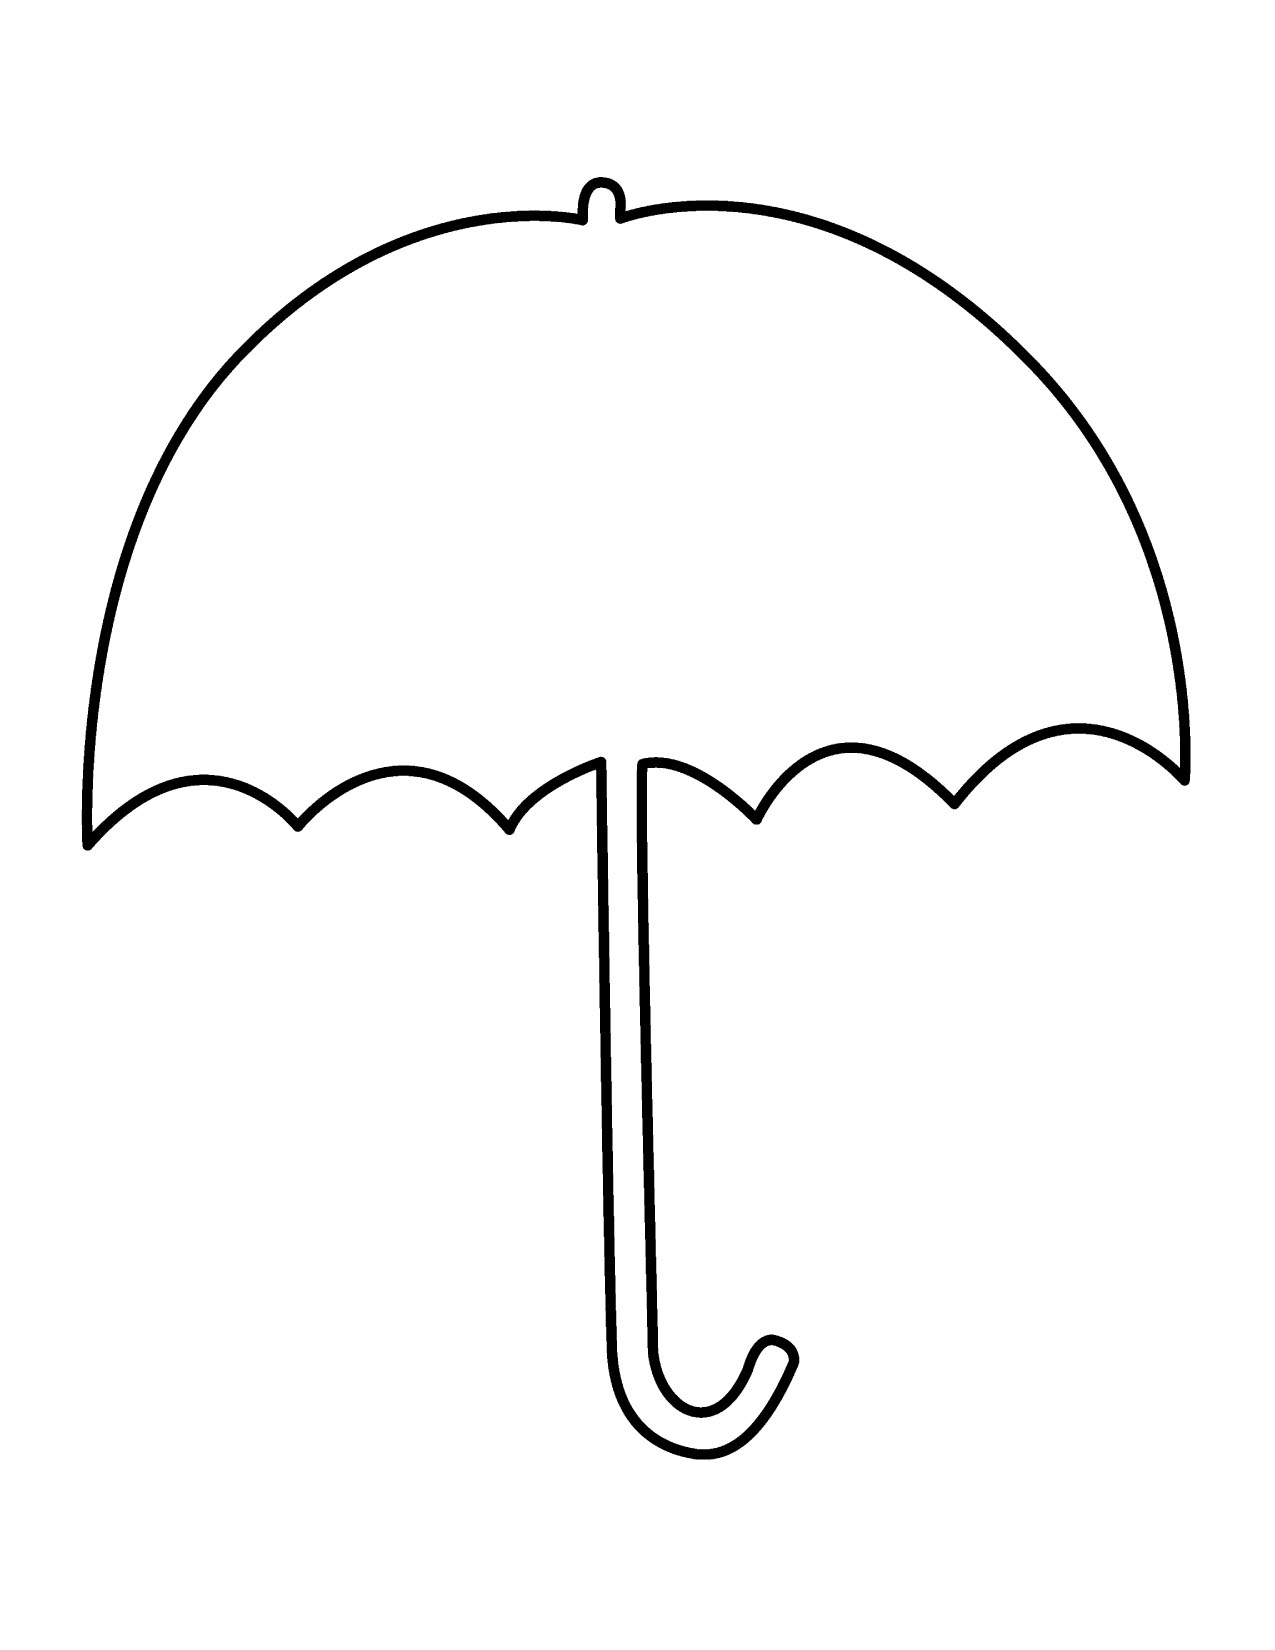 Priceless image inside printable umbrella template